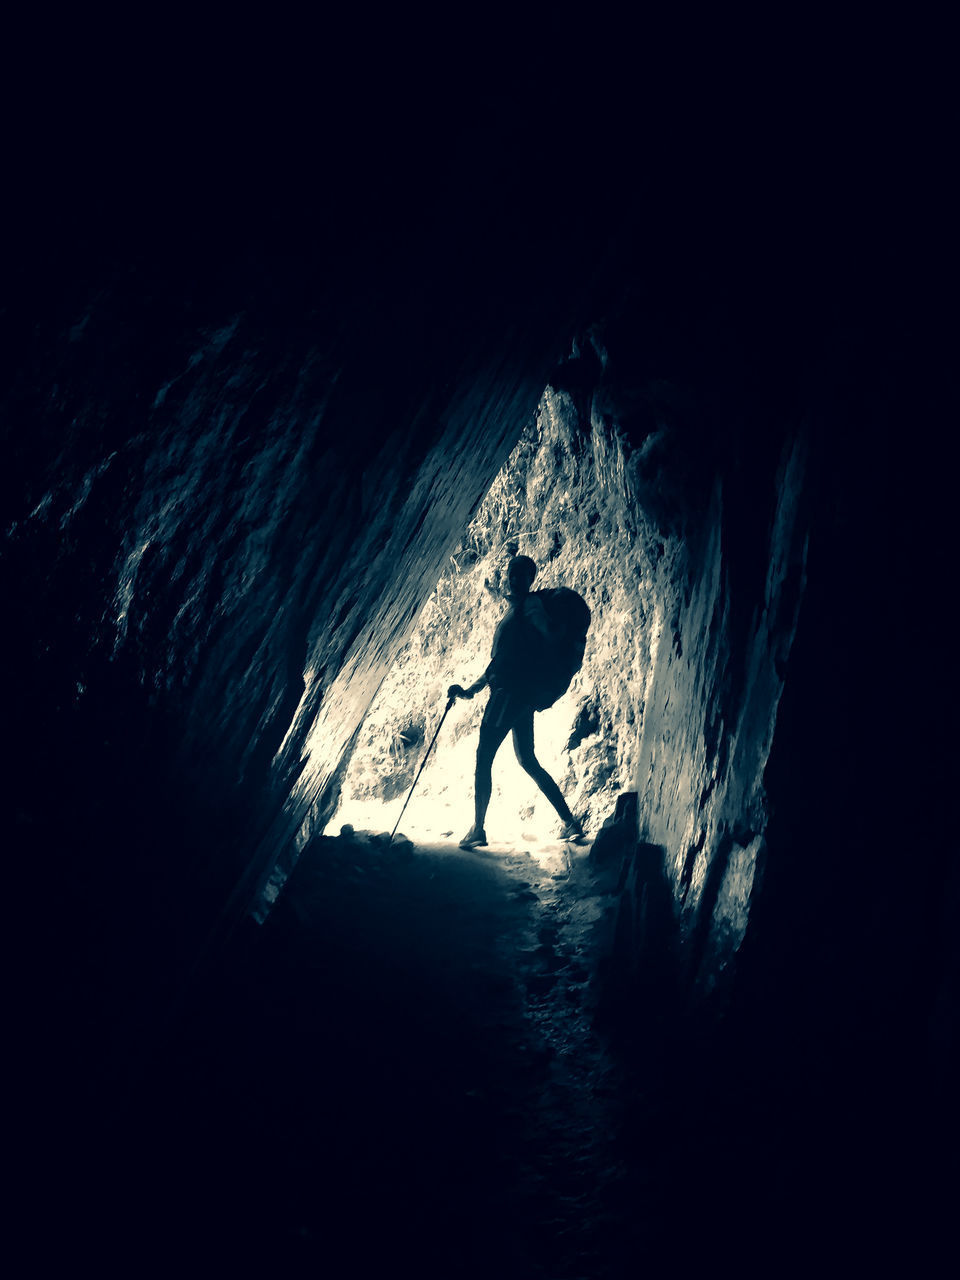 SILHOUETTE MAN AND WOMAN IN CAVE SEEN THROUGH CAMERA